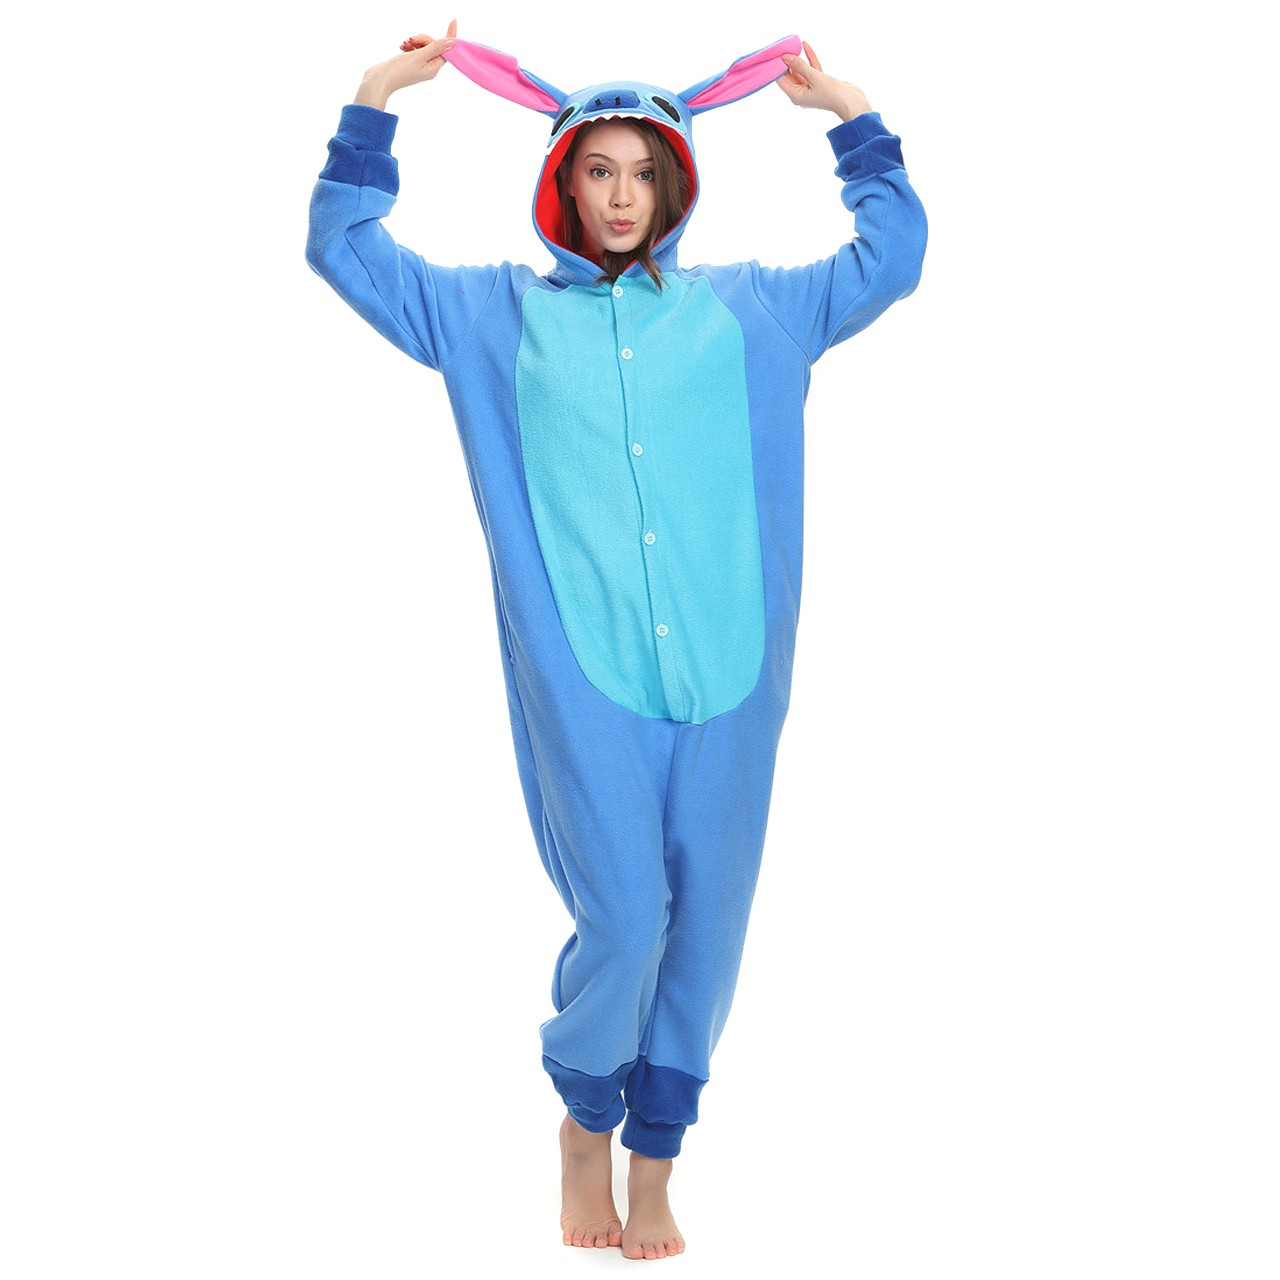 Stitch Onesie for Adult Kigurumi Pajama Disney Lilo   Stitch Costumes e8973c001